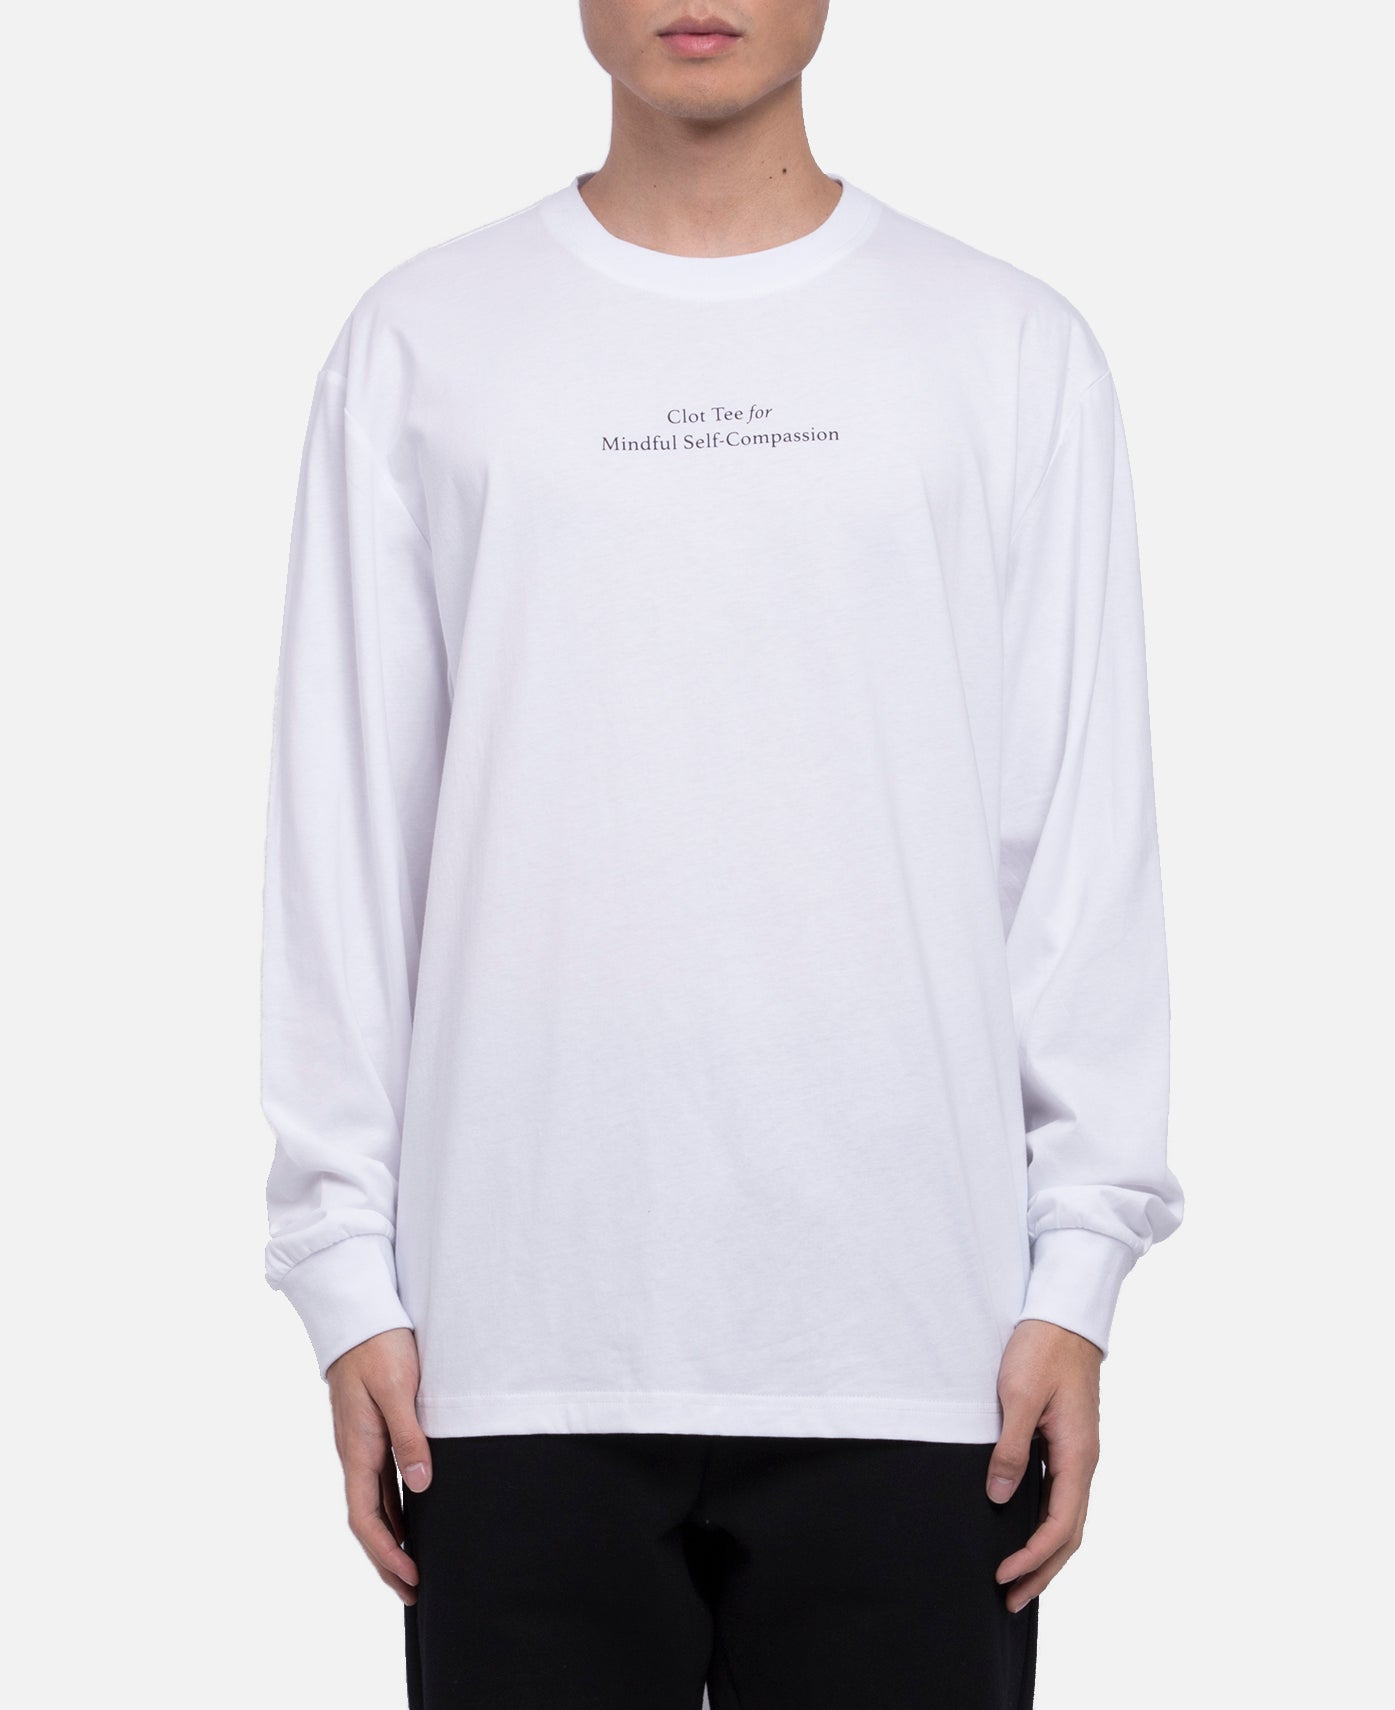 Mindful Self Compassion L/S T-Shirt (White)